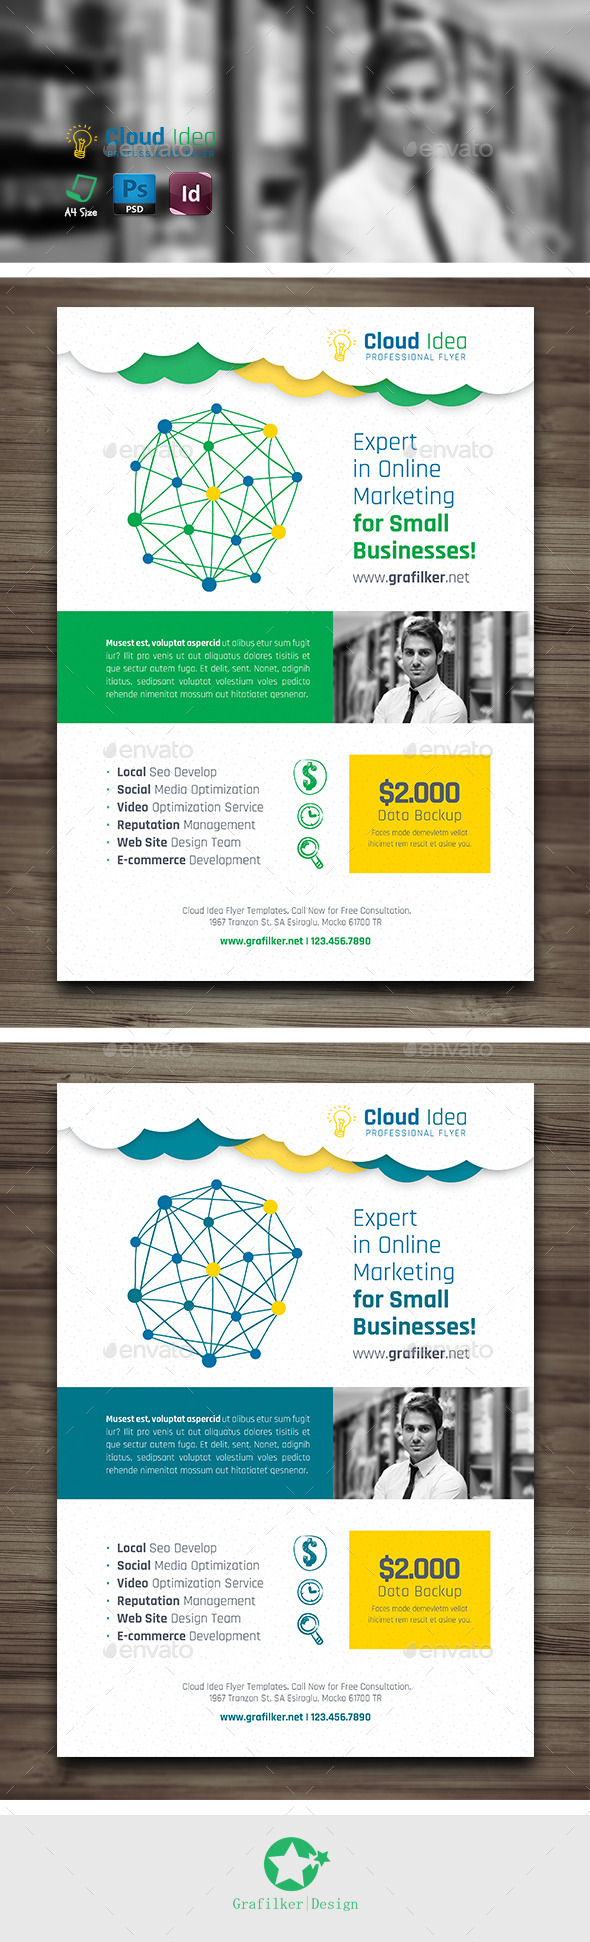 GraphicRiver Cloud Idea Flyer Templates 10168225